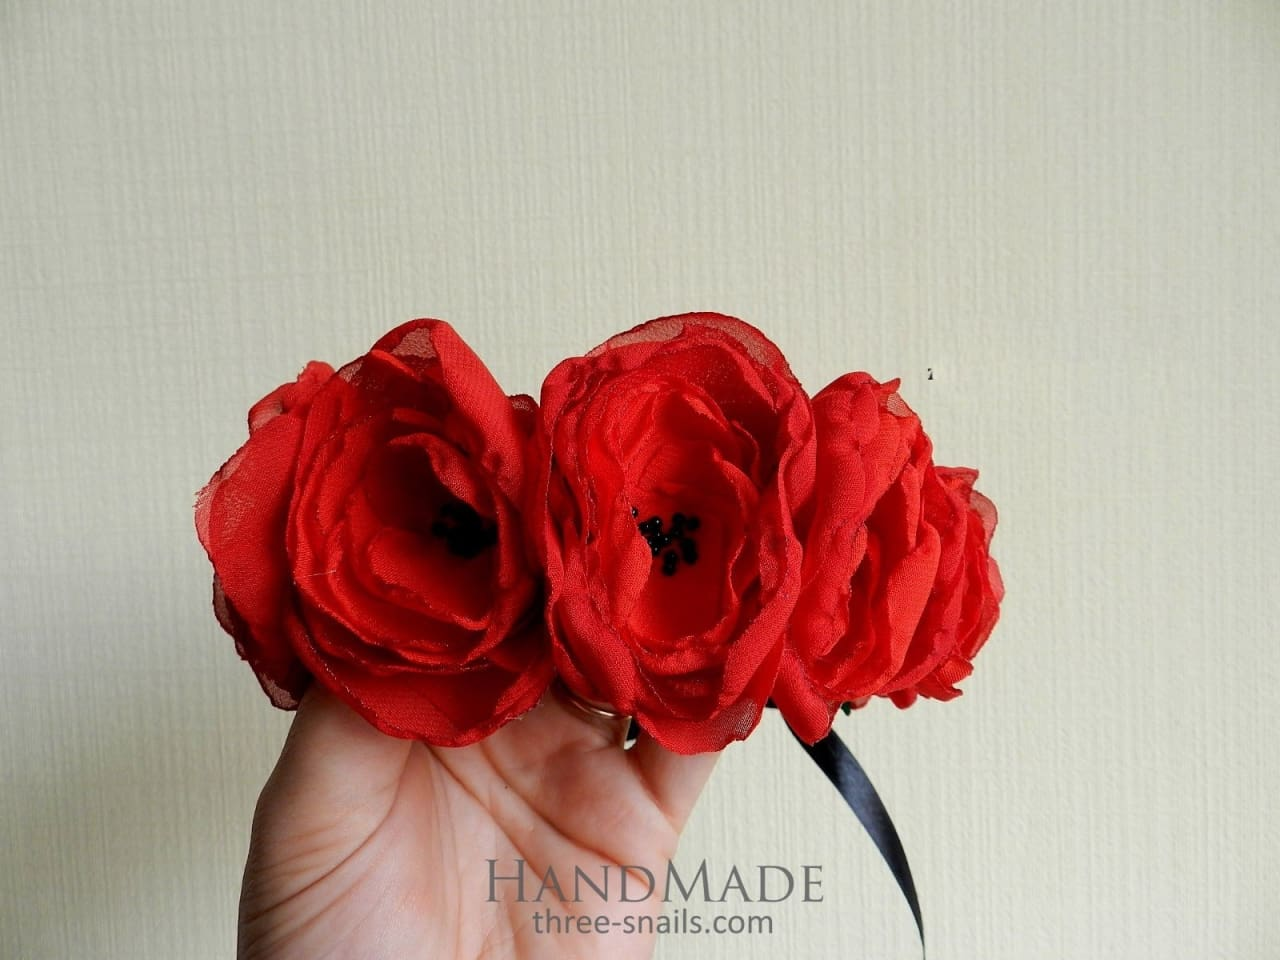 Handmade Flower Headbands For Women Three Snails Handmade Shop Online